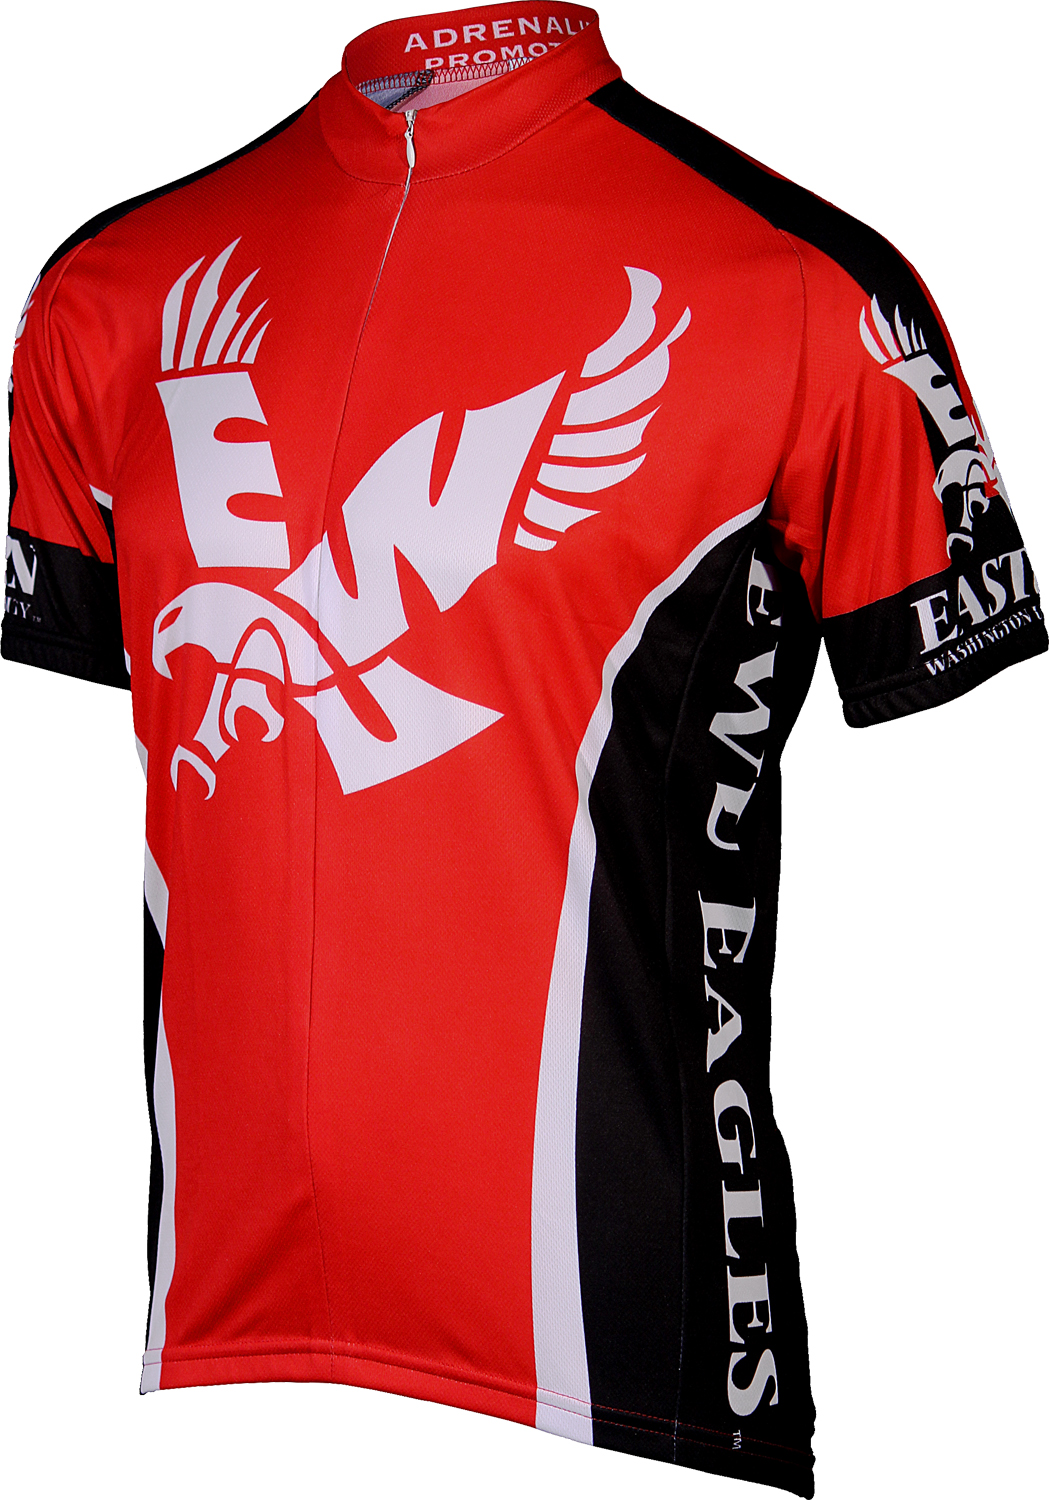 Eastern Washington University Cycling Jersey